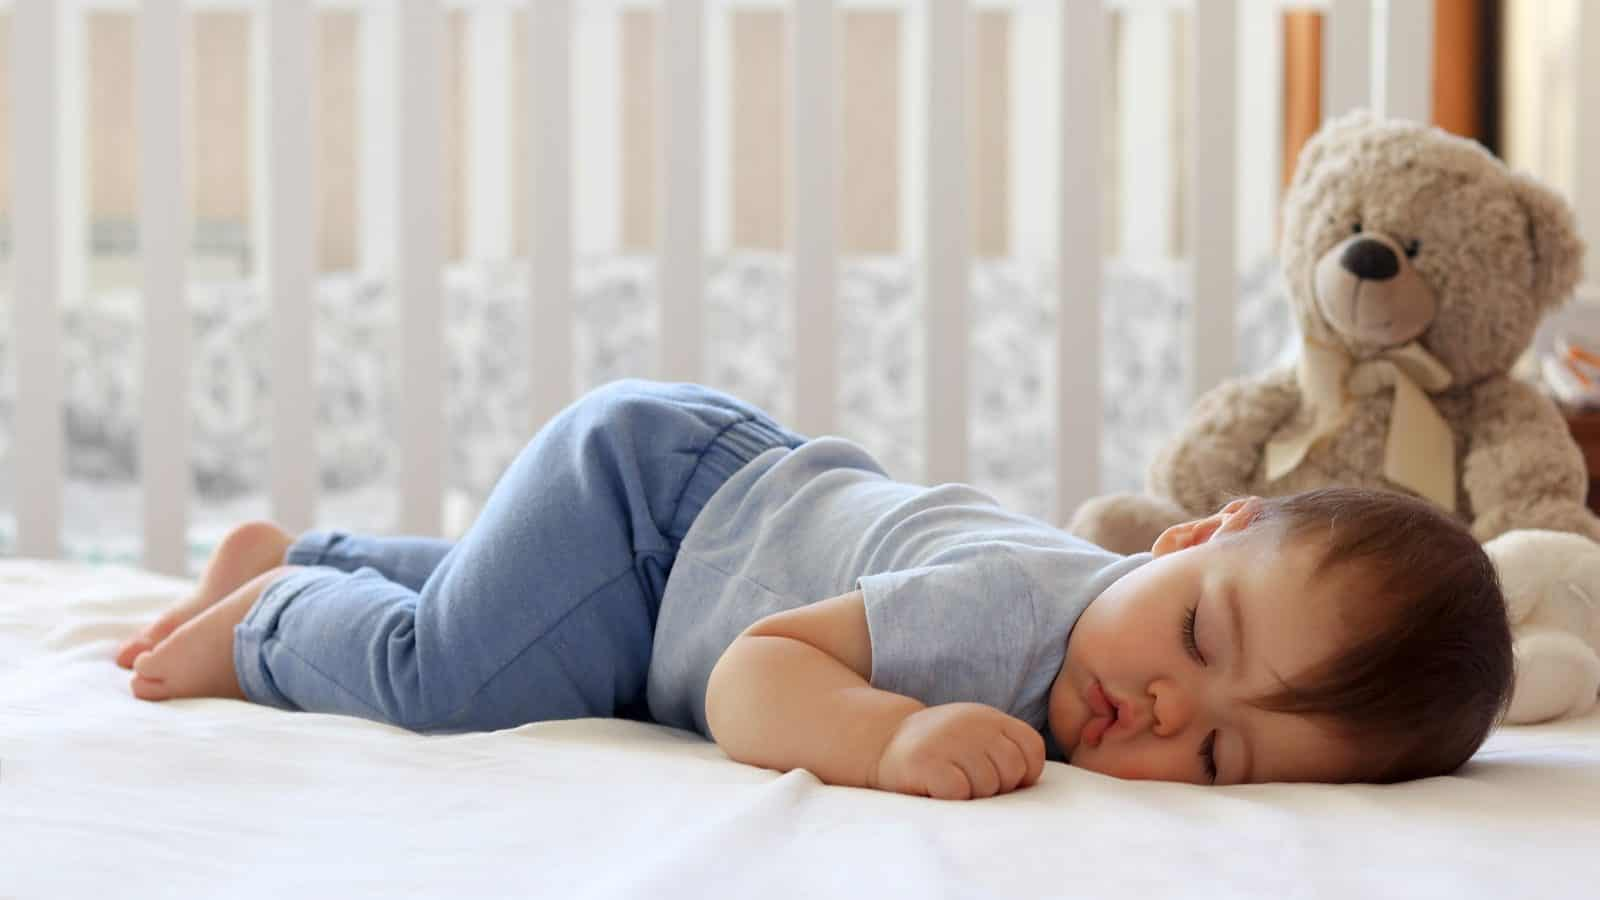 When Can Babies Sleep on Their Stomachs